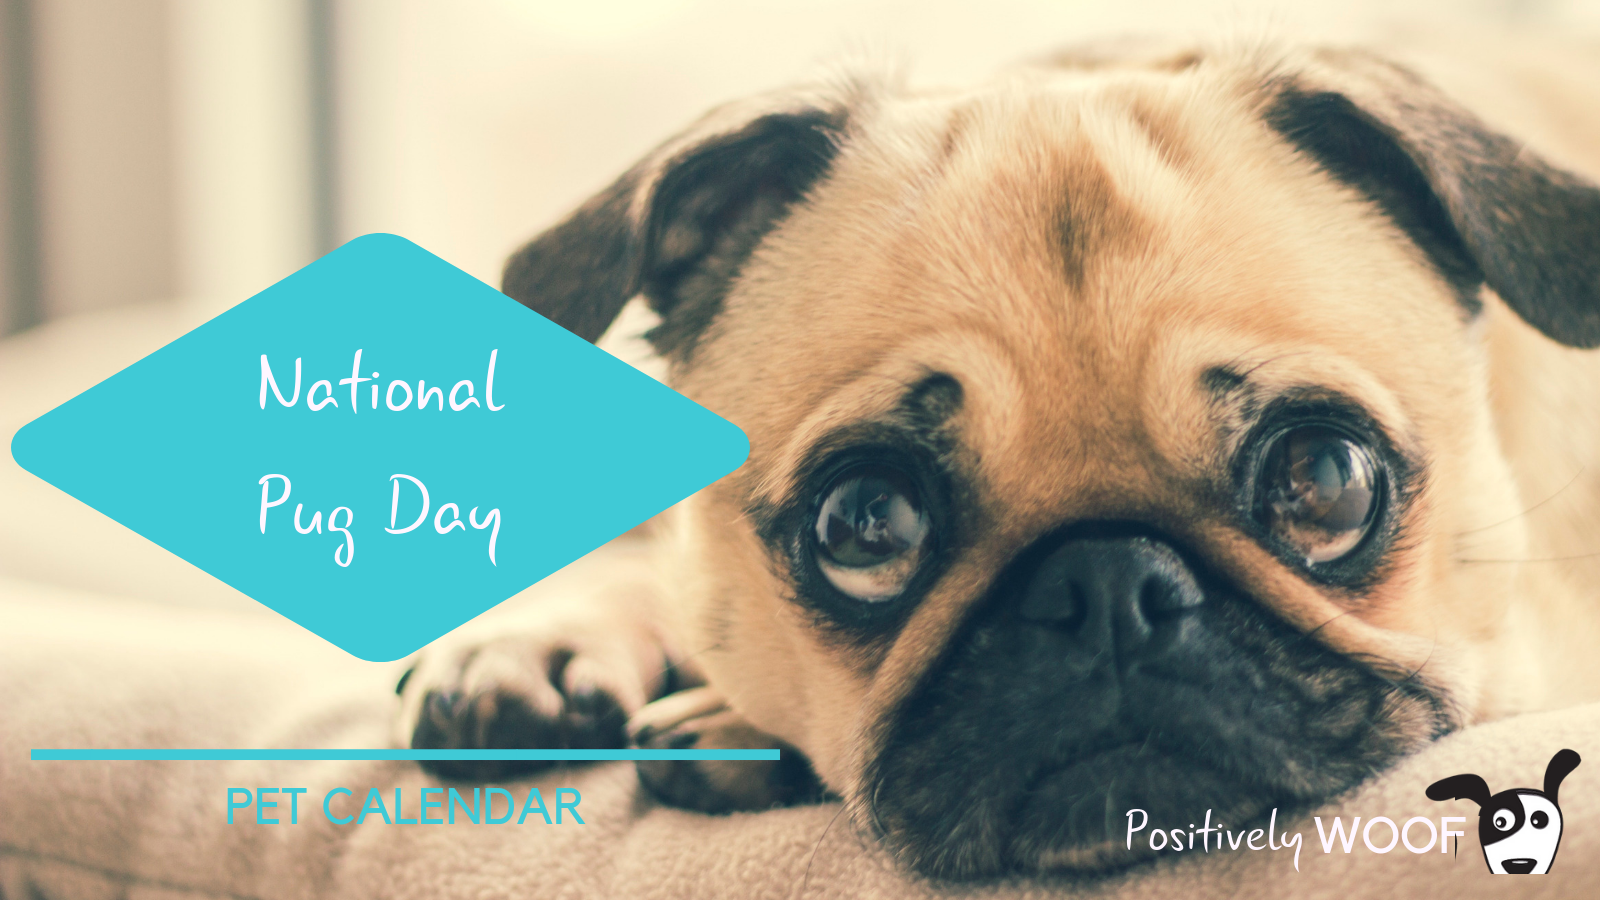 pet calendar national pug day